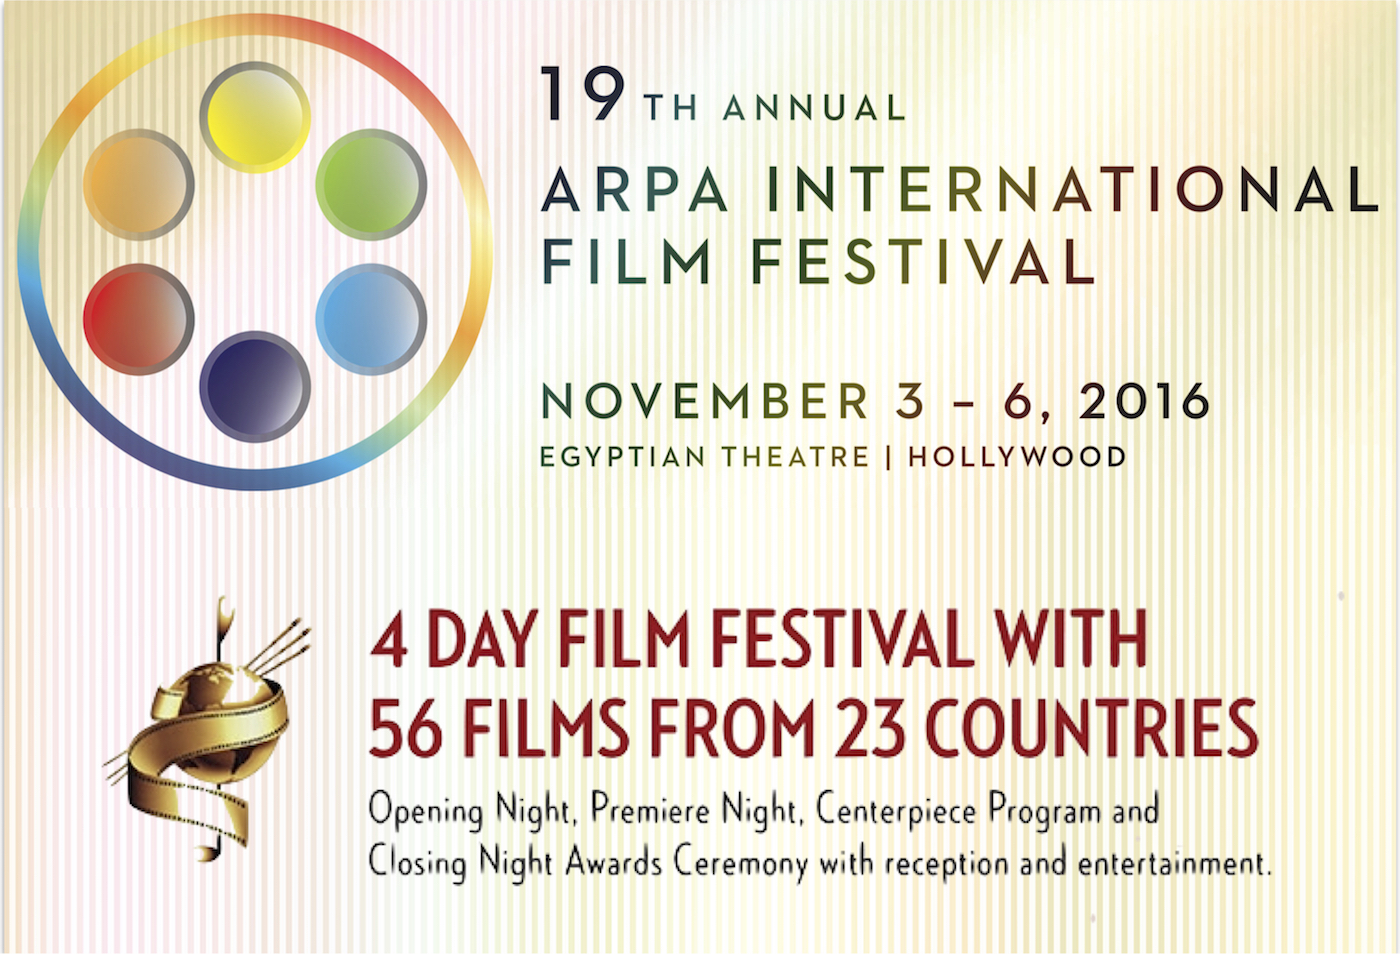 Everything You Need to Know About Arpa IFF 2016